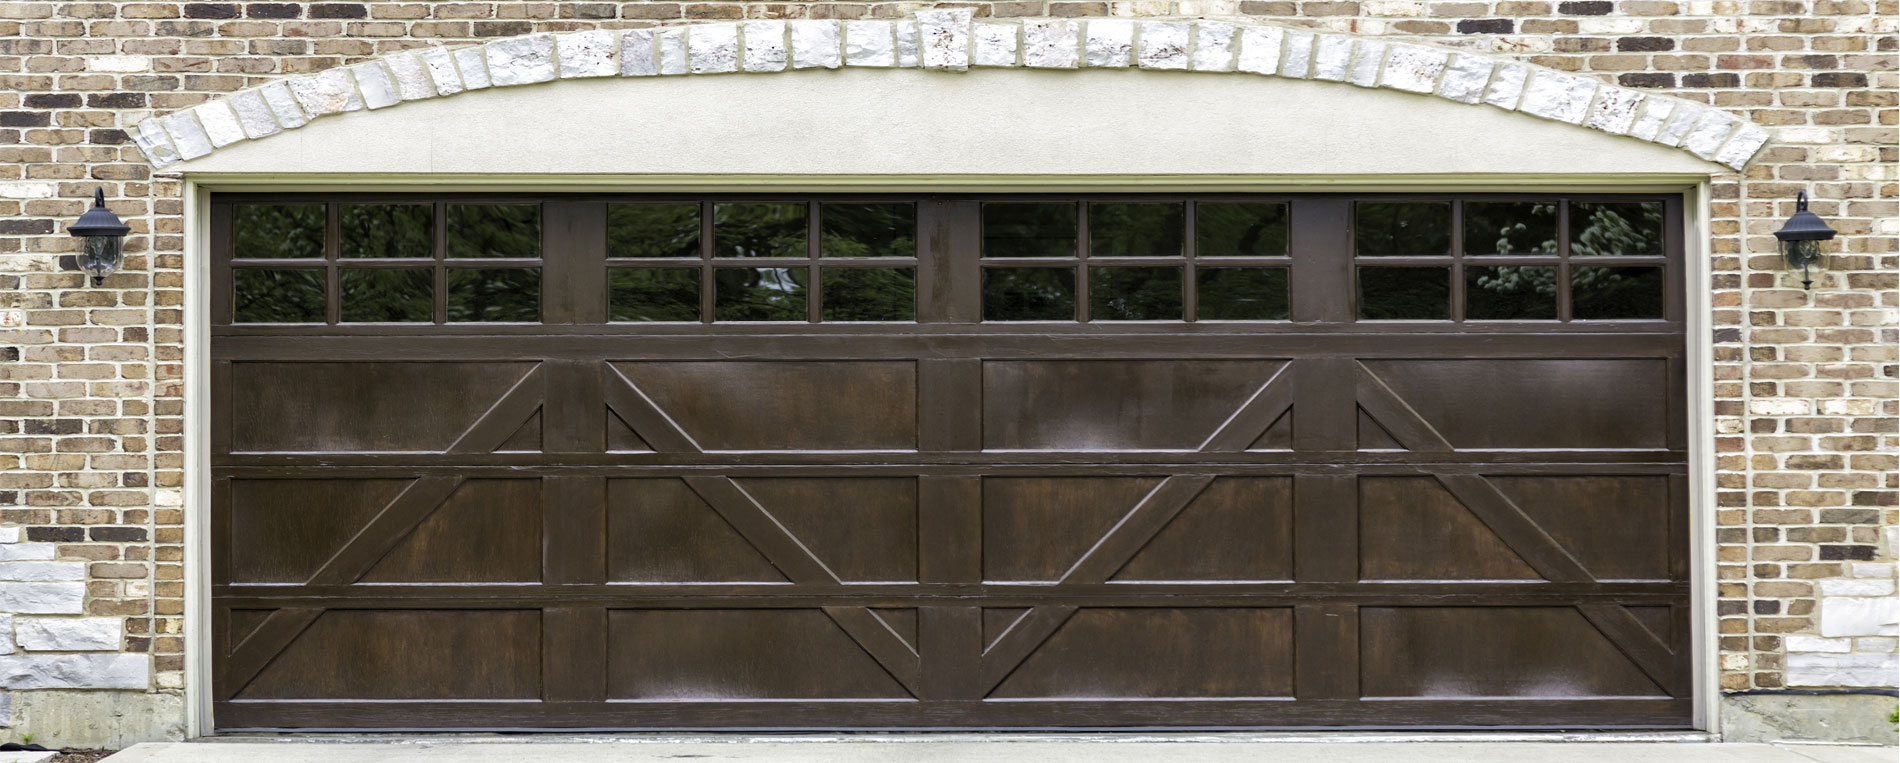 4 Considerations For New Garage Doors